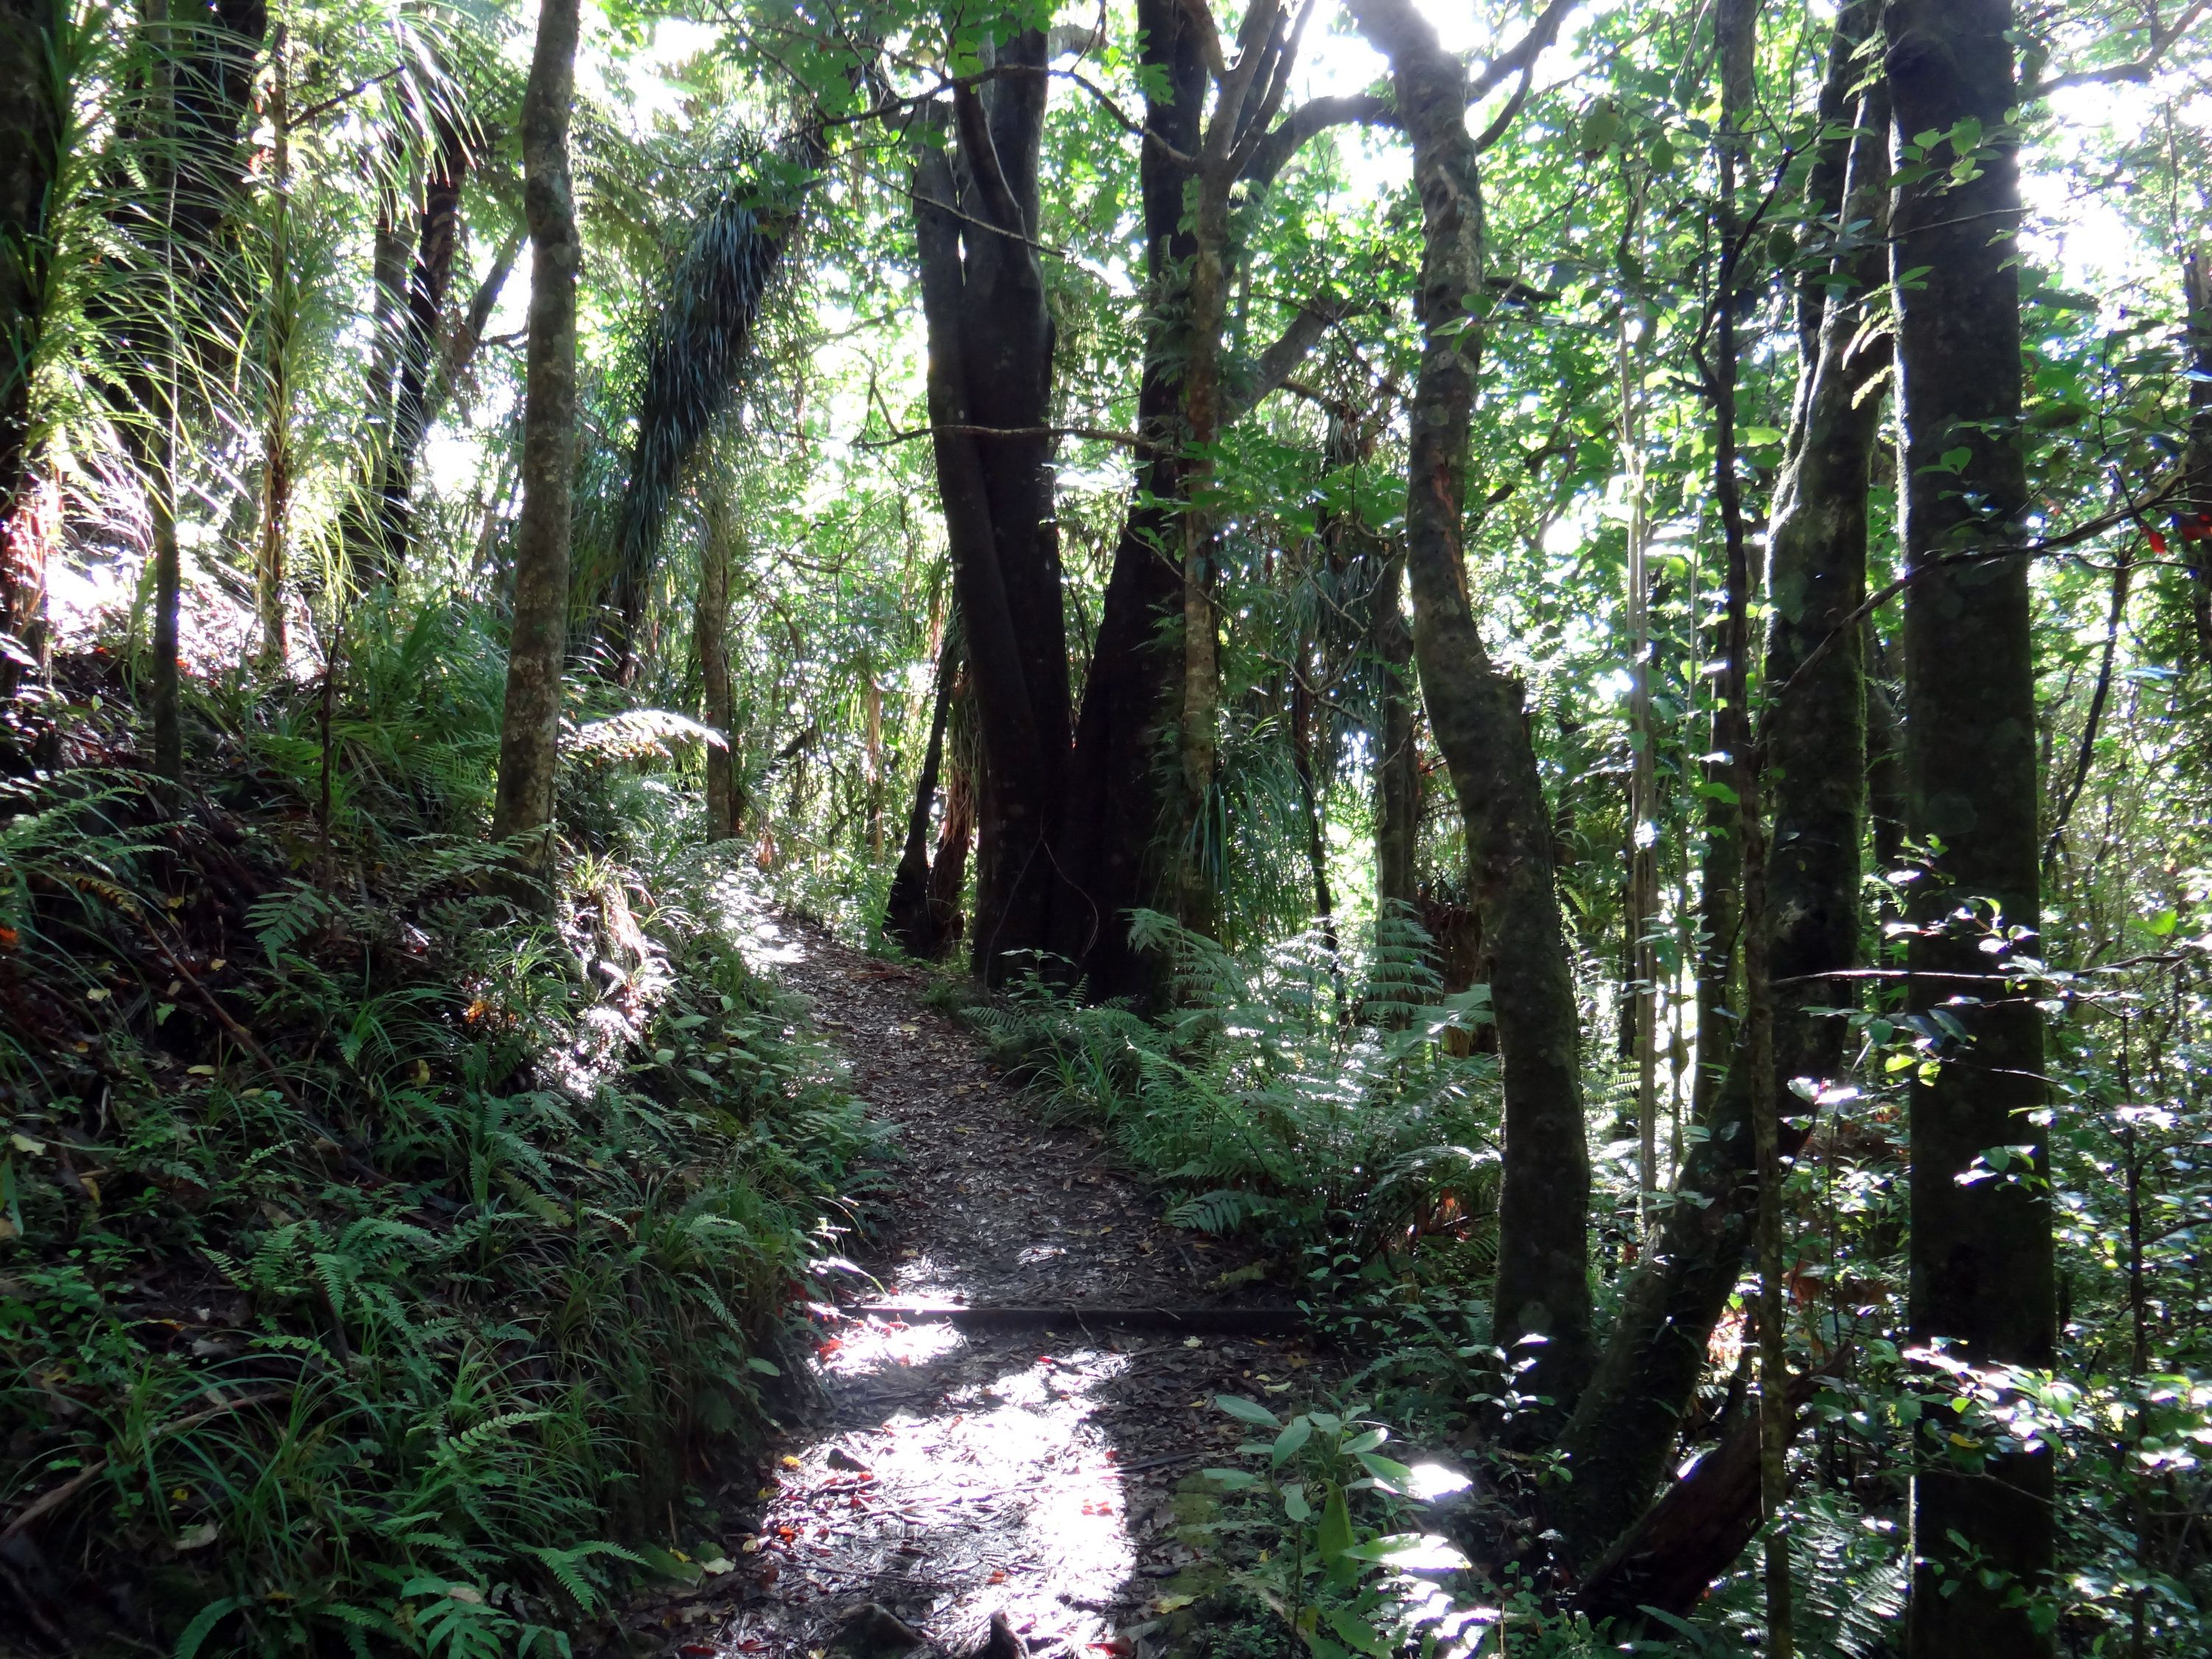 Hiking trail in Ship Cove historic area, New Zealand